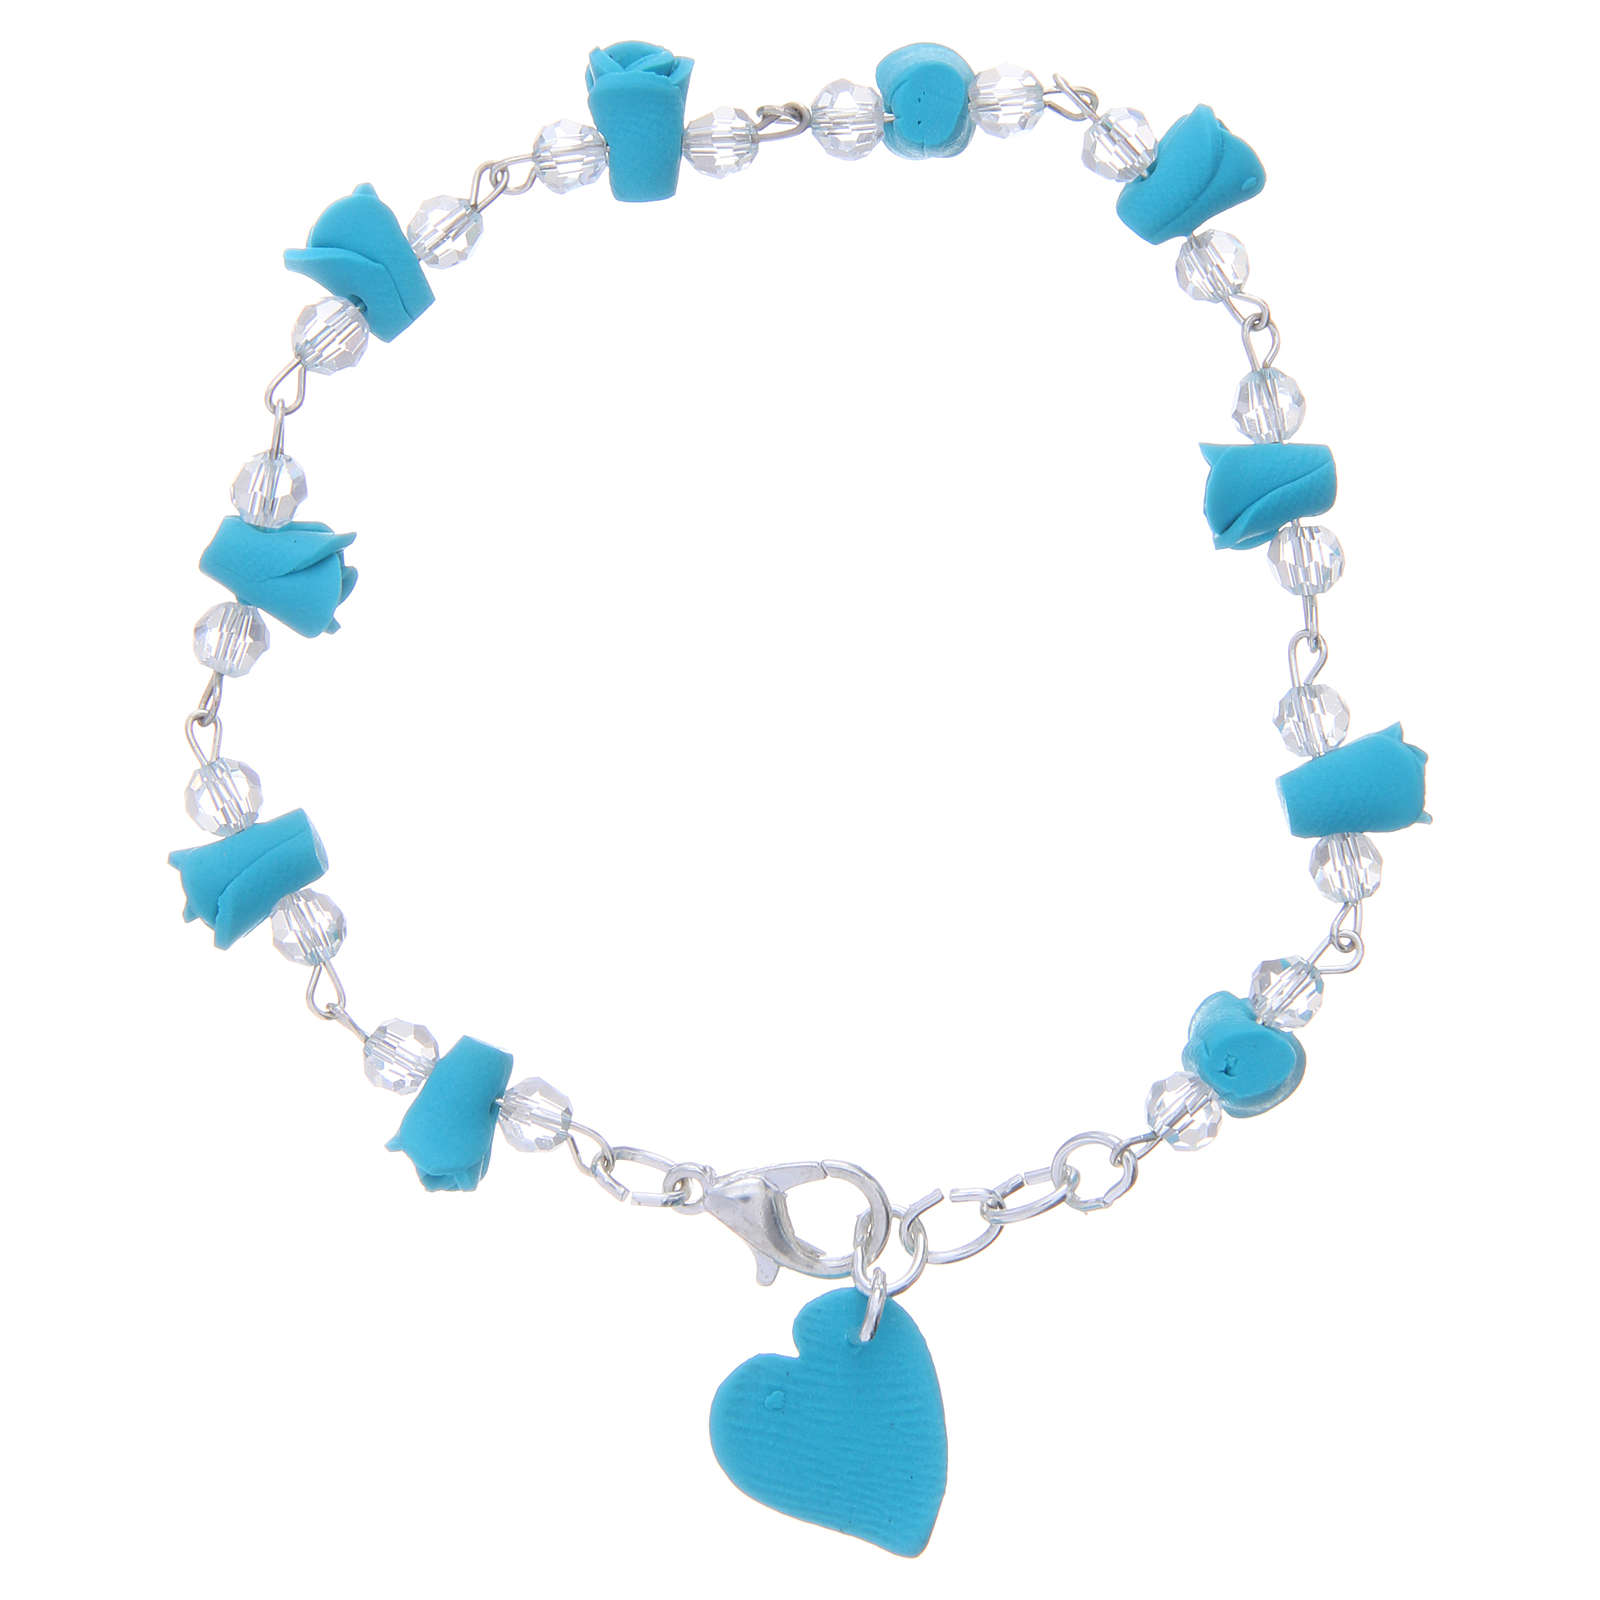 Medjugorje Rosary bracelet, turquoise with crystal beads and ceramic hearts 4